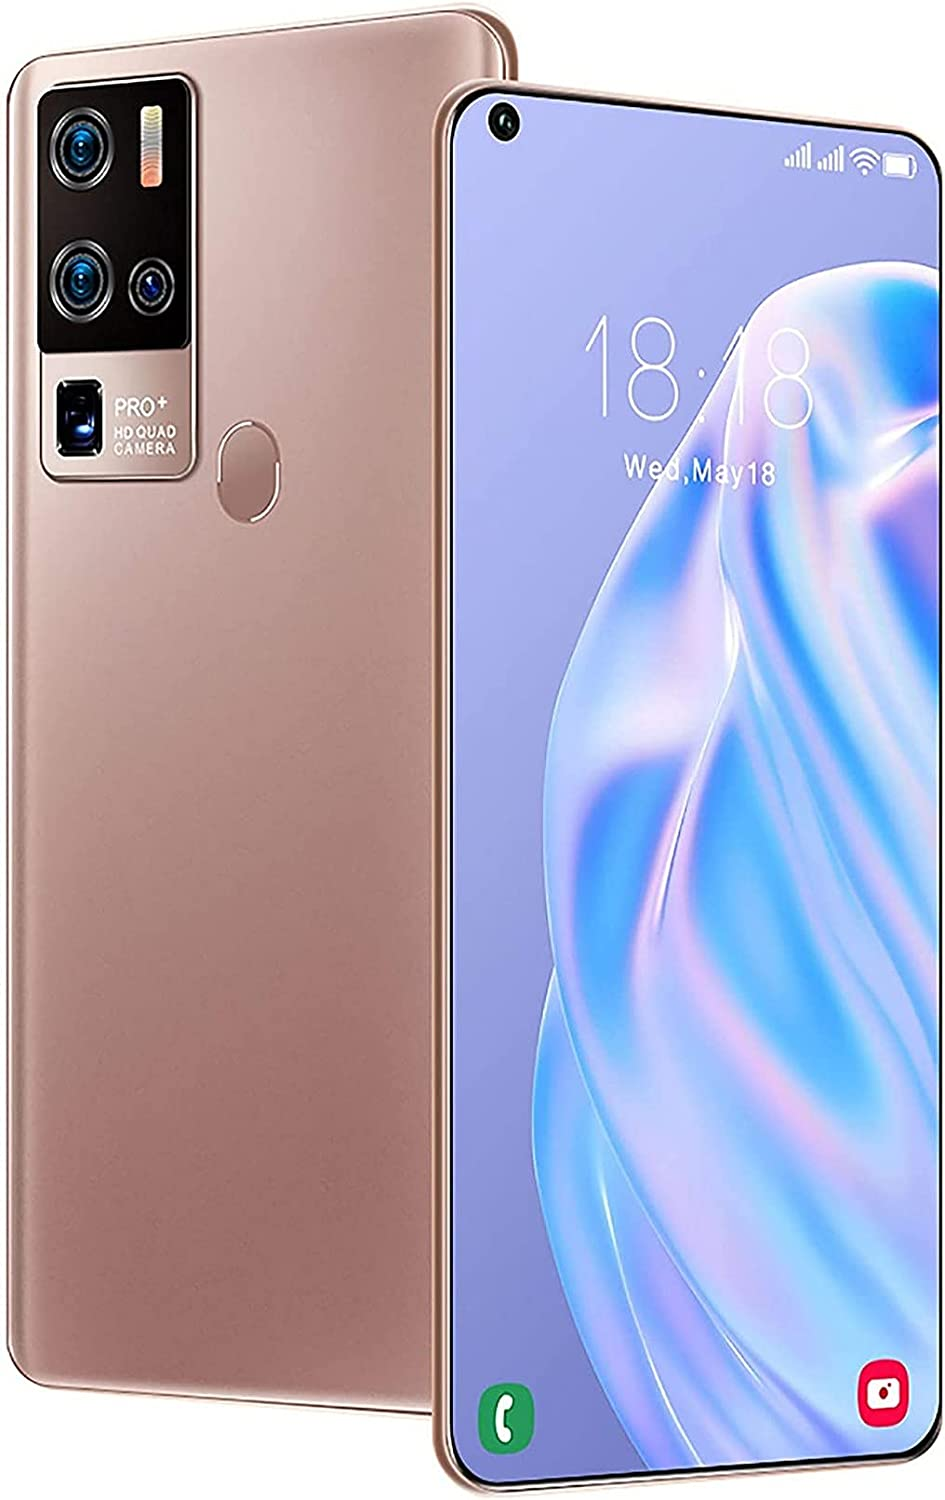 WWJ Smartphone X50 Pro+ 6.9 Inch Screen Phone Big Animer and price revision Popular Mobile